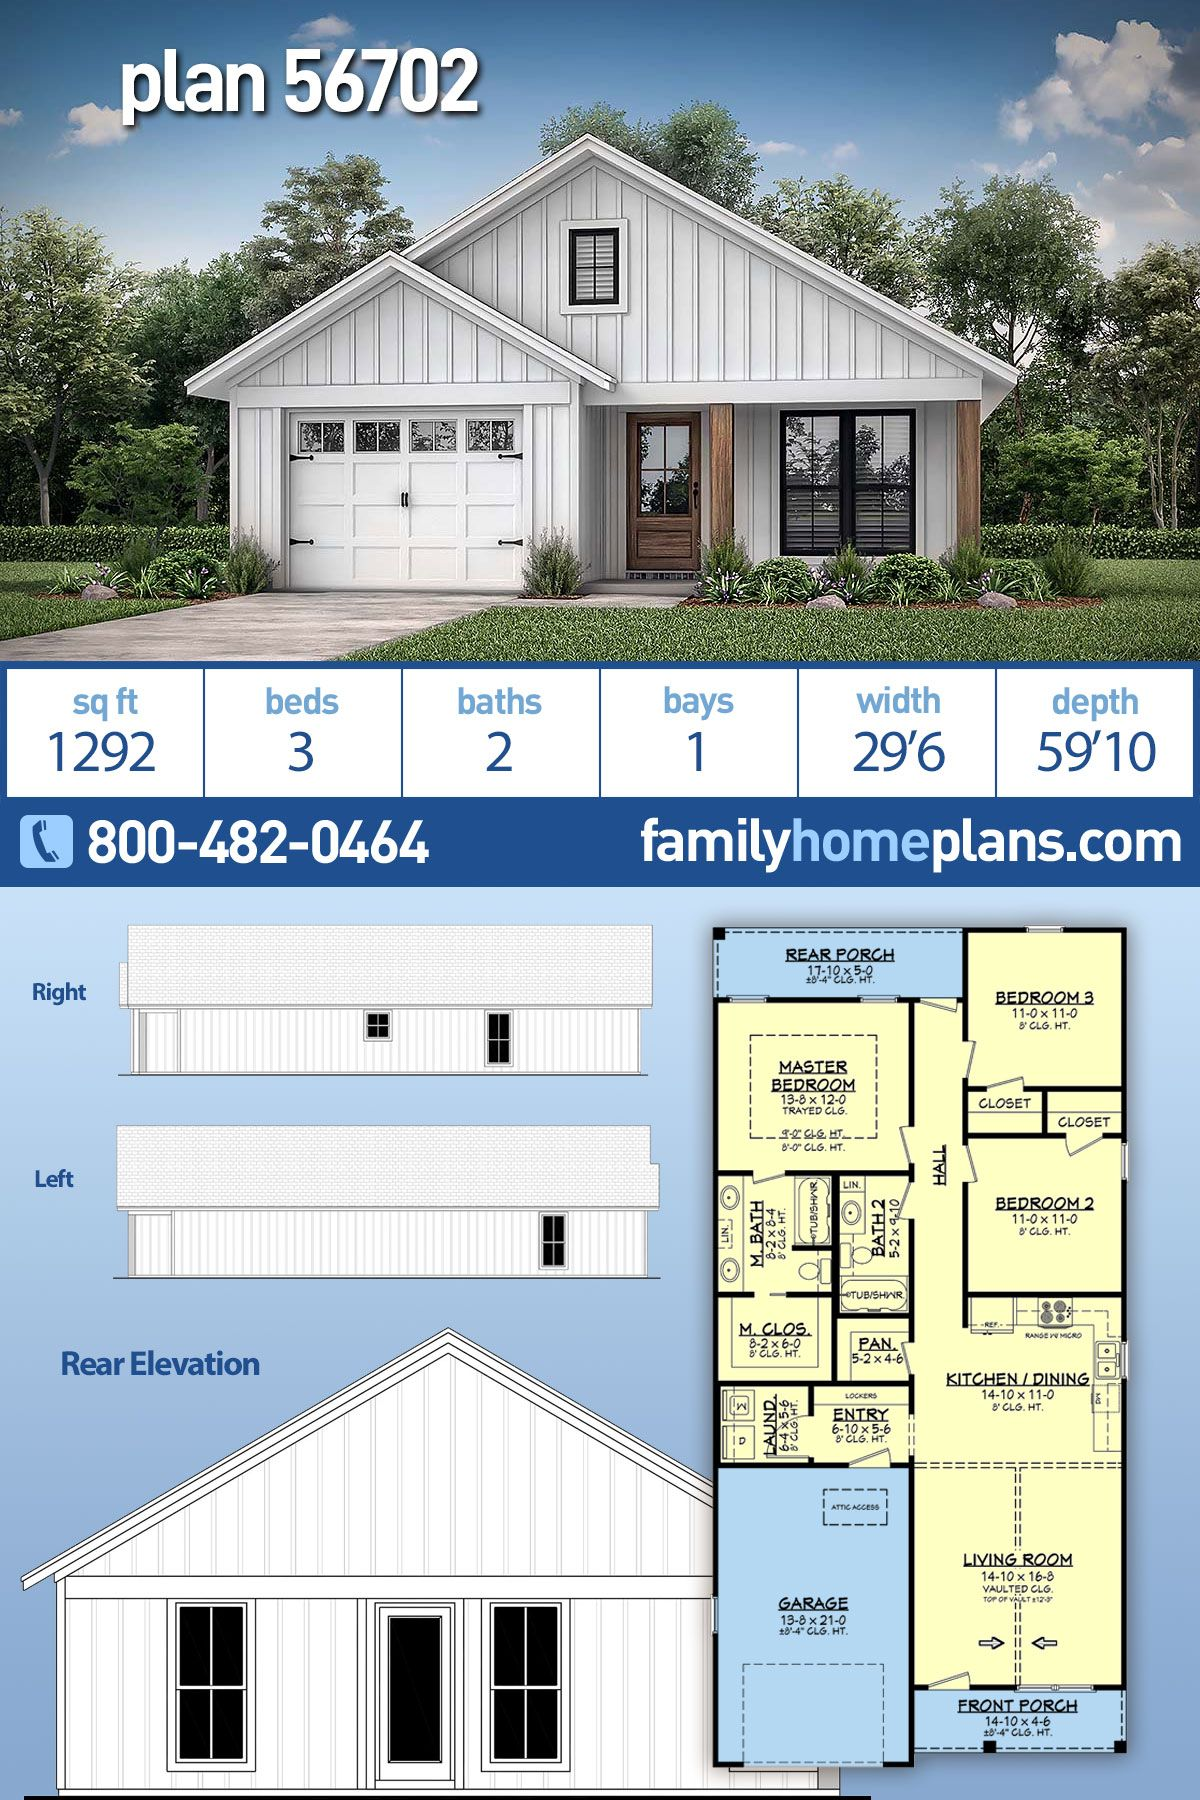 Traditional Style House Plan 56702 With 3 Bed 2 Bath 1 Car Garage Narrow House Plans Family House Plans House Plans Farmhouse